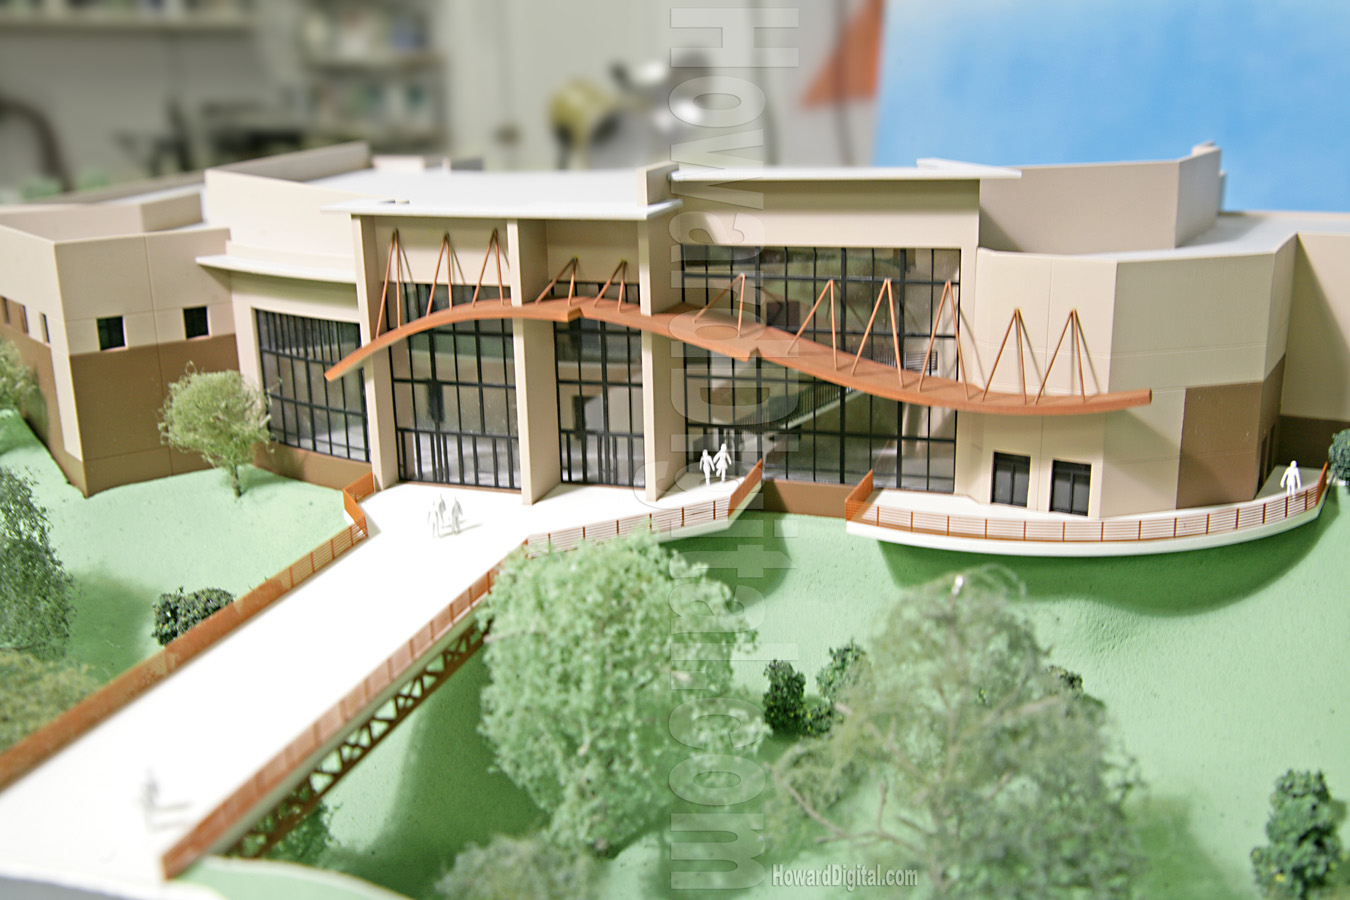 3d Architectural Model Is Bound To Make An Impact In Your